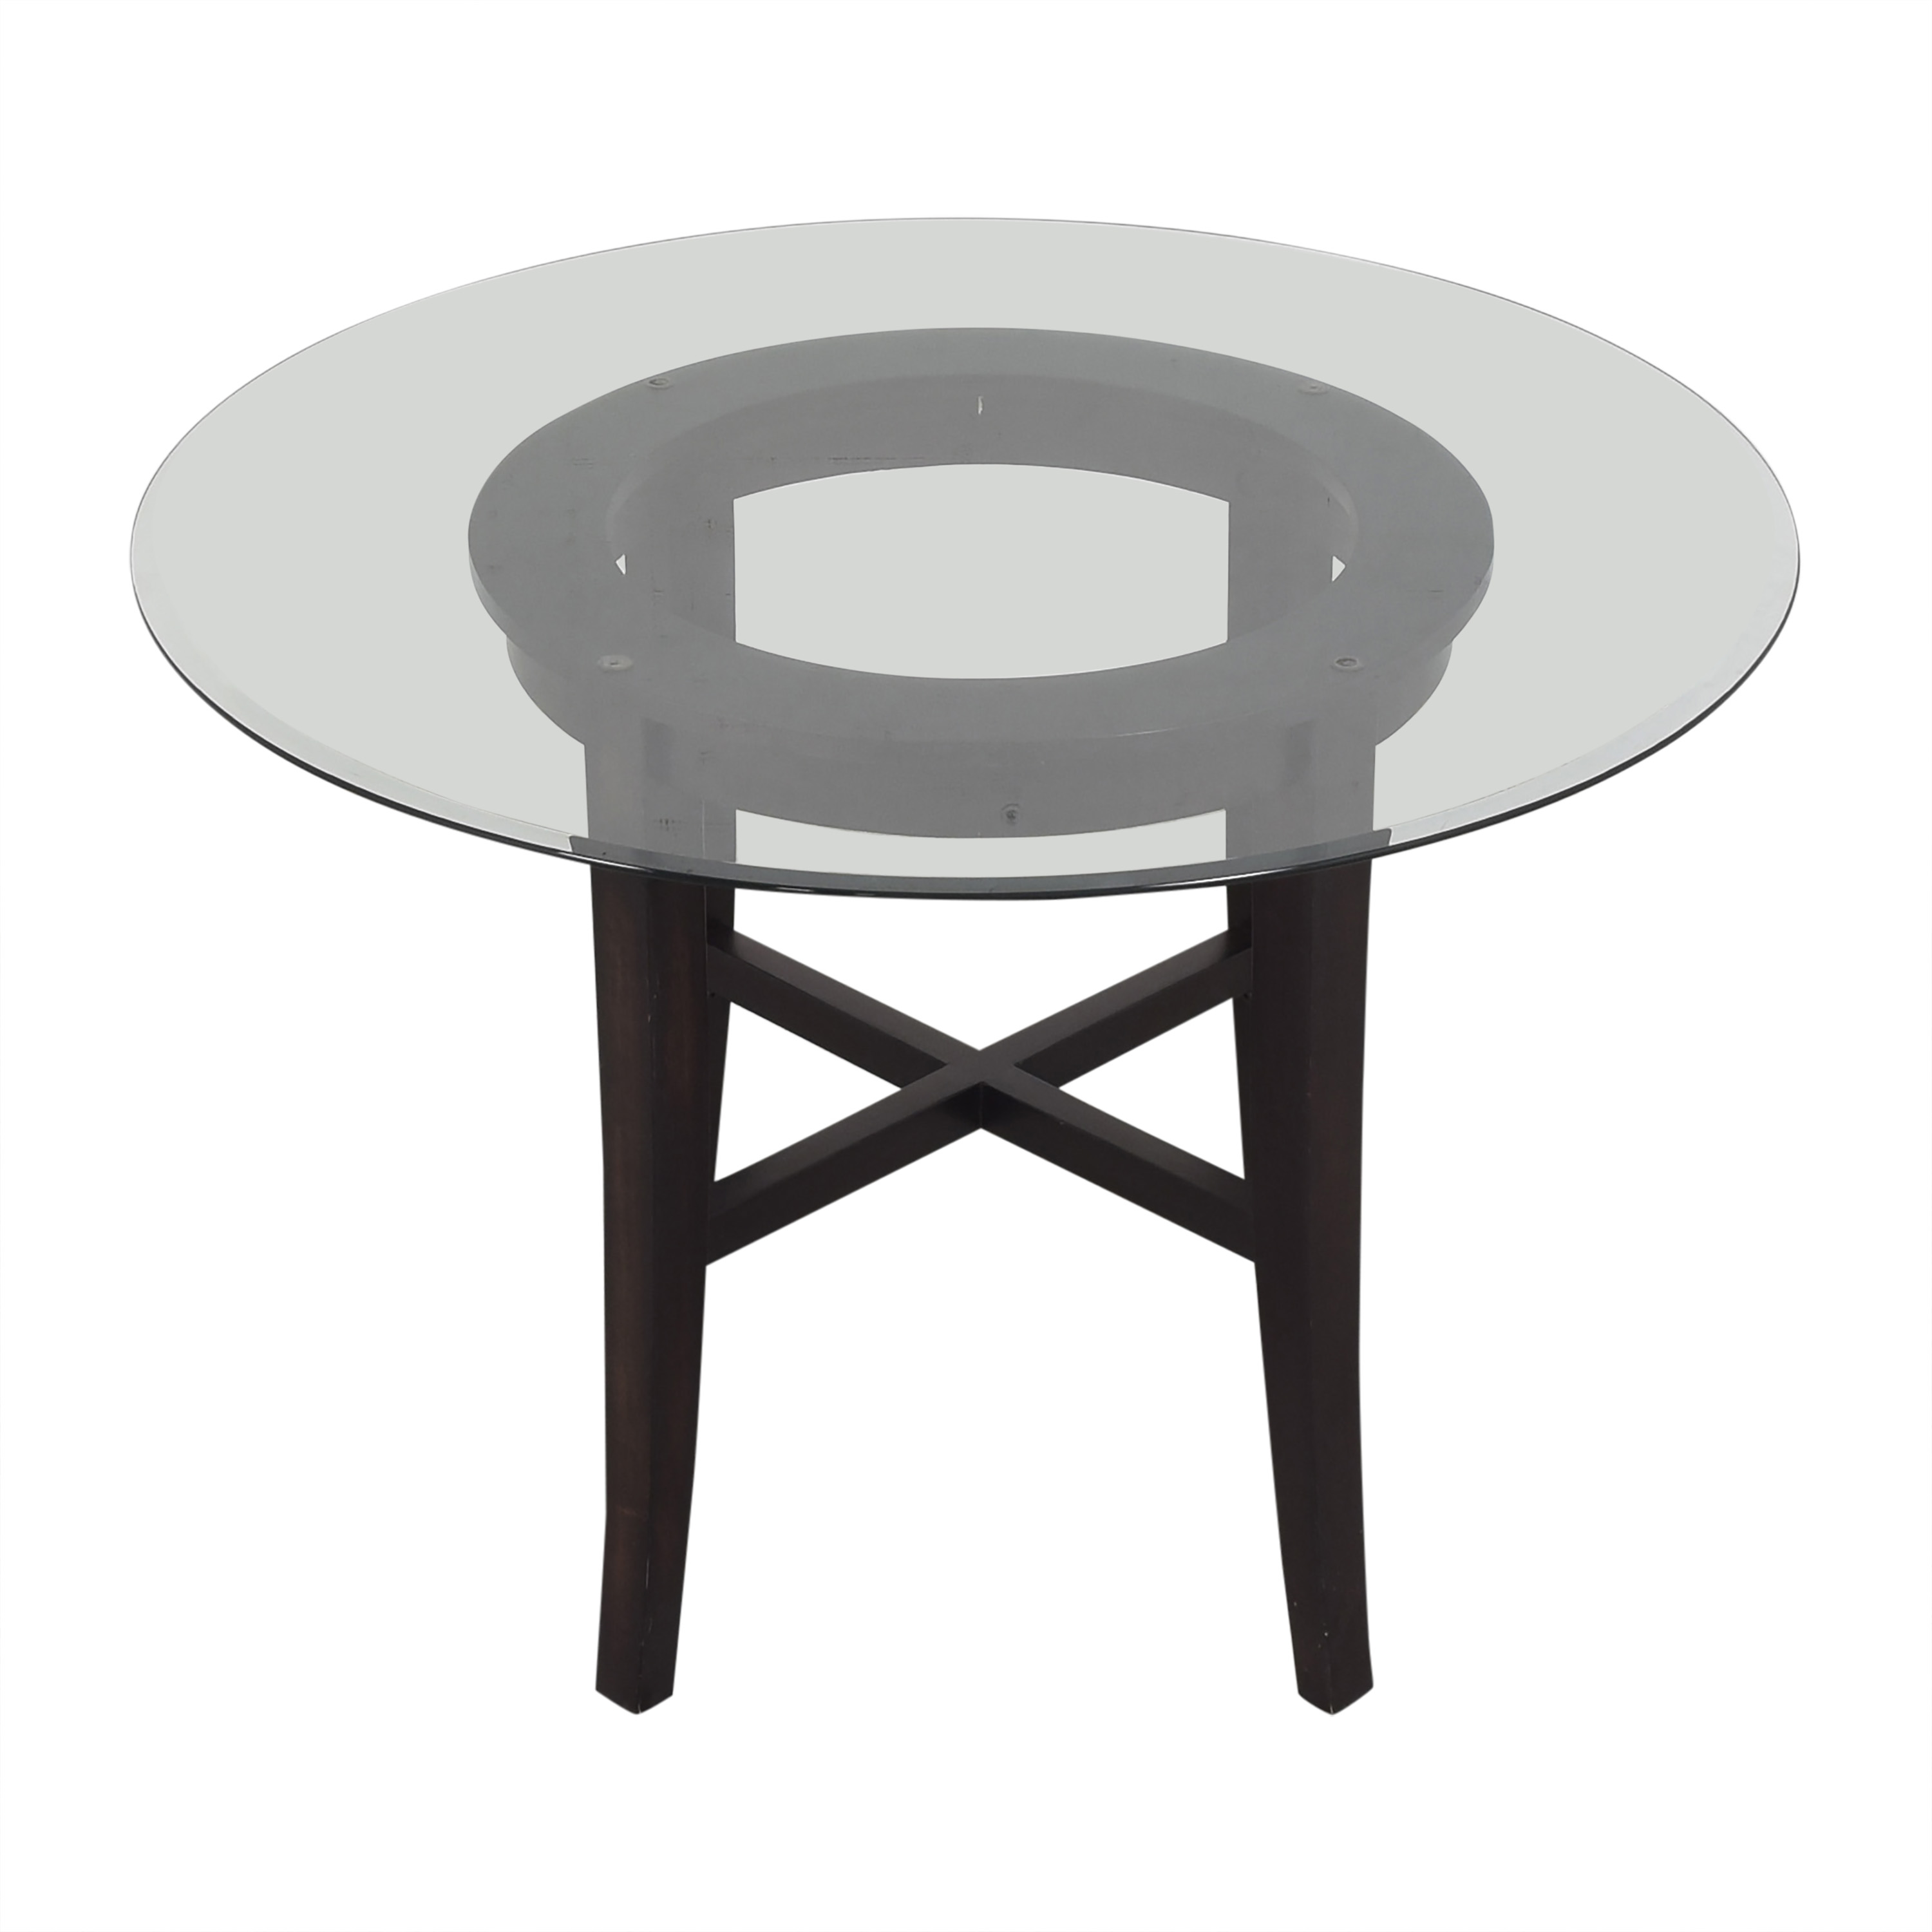 Ashley Furniture Ashley Furniture Zimmer Round Dining Table price